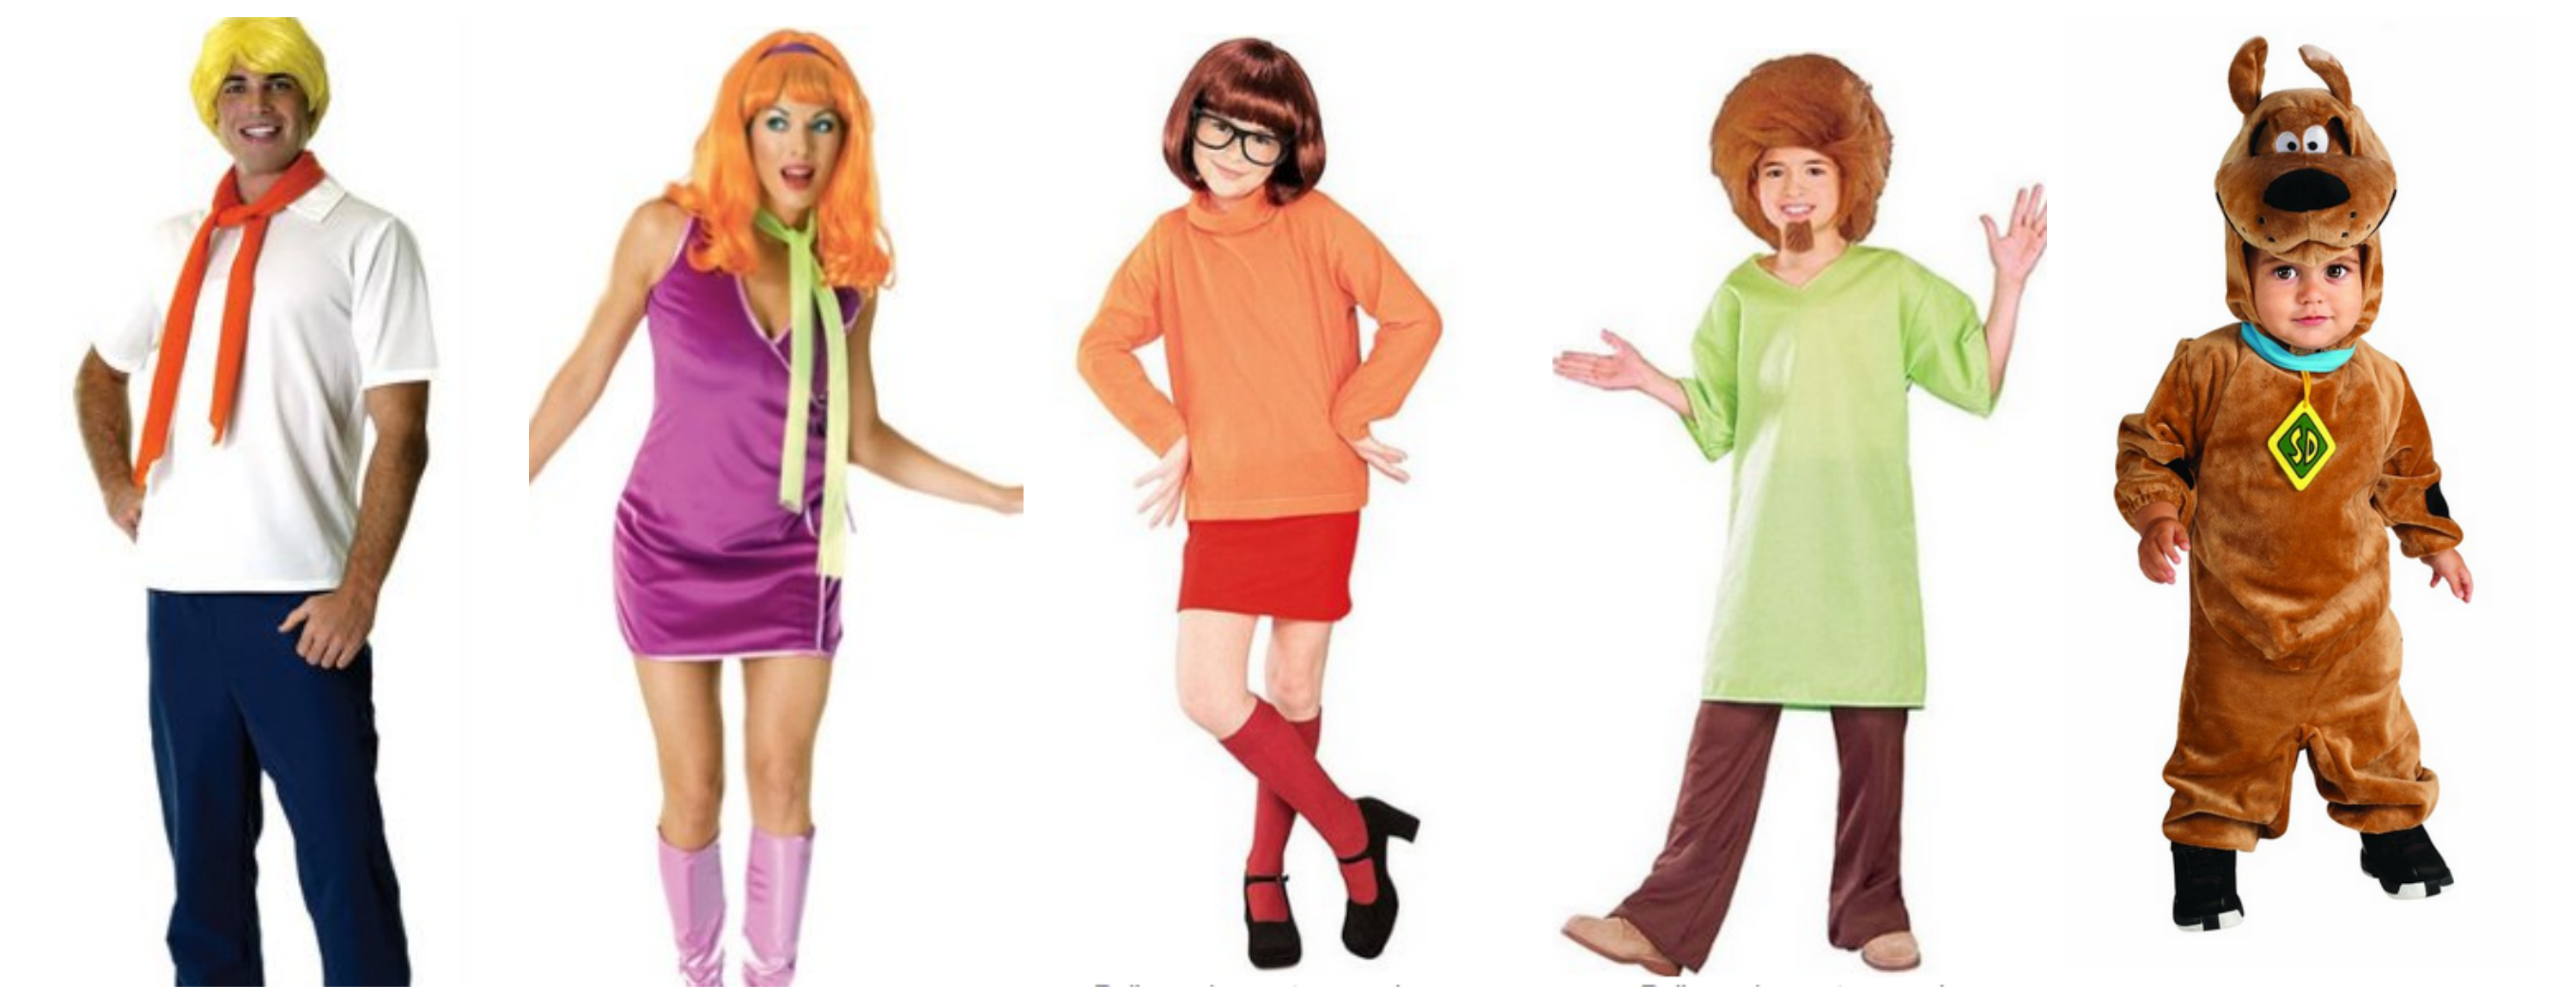 Scooby Doo Family Halloween Costume